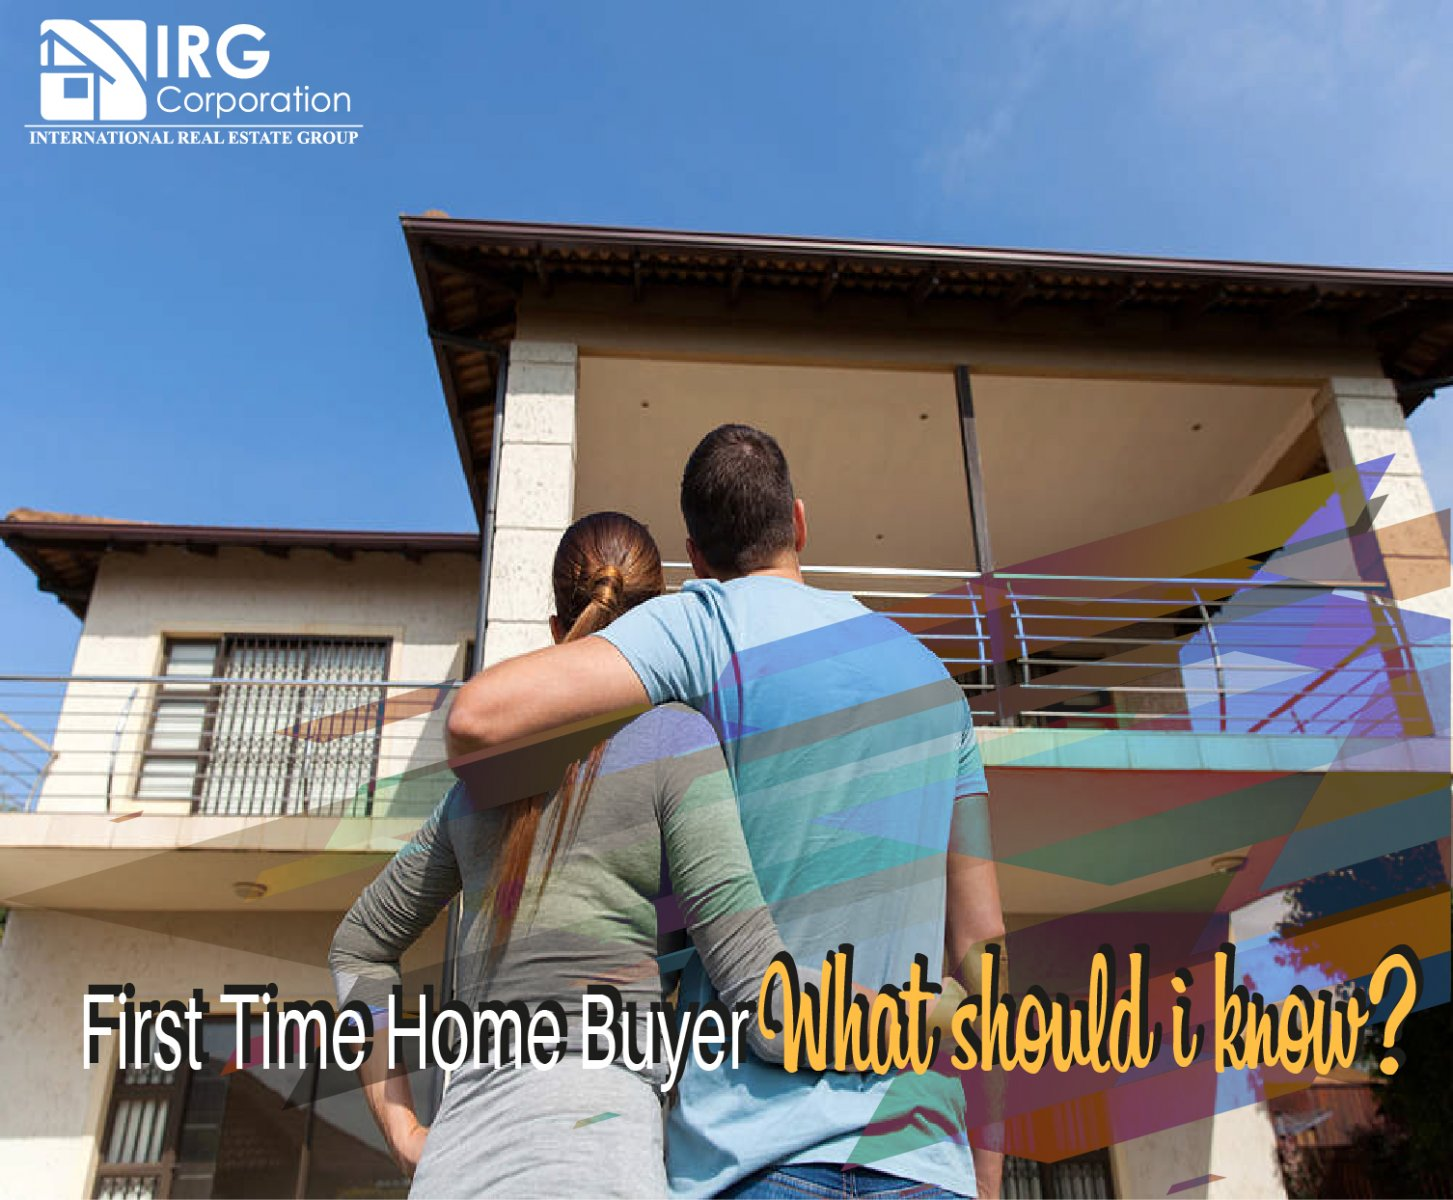 First Time-Home-Buyer-What-should-i-know?.jpg